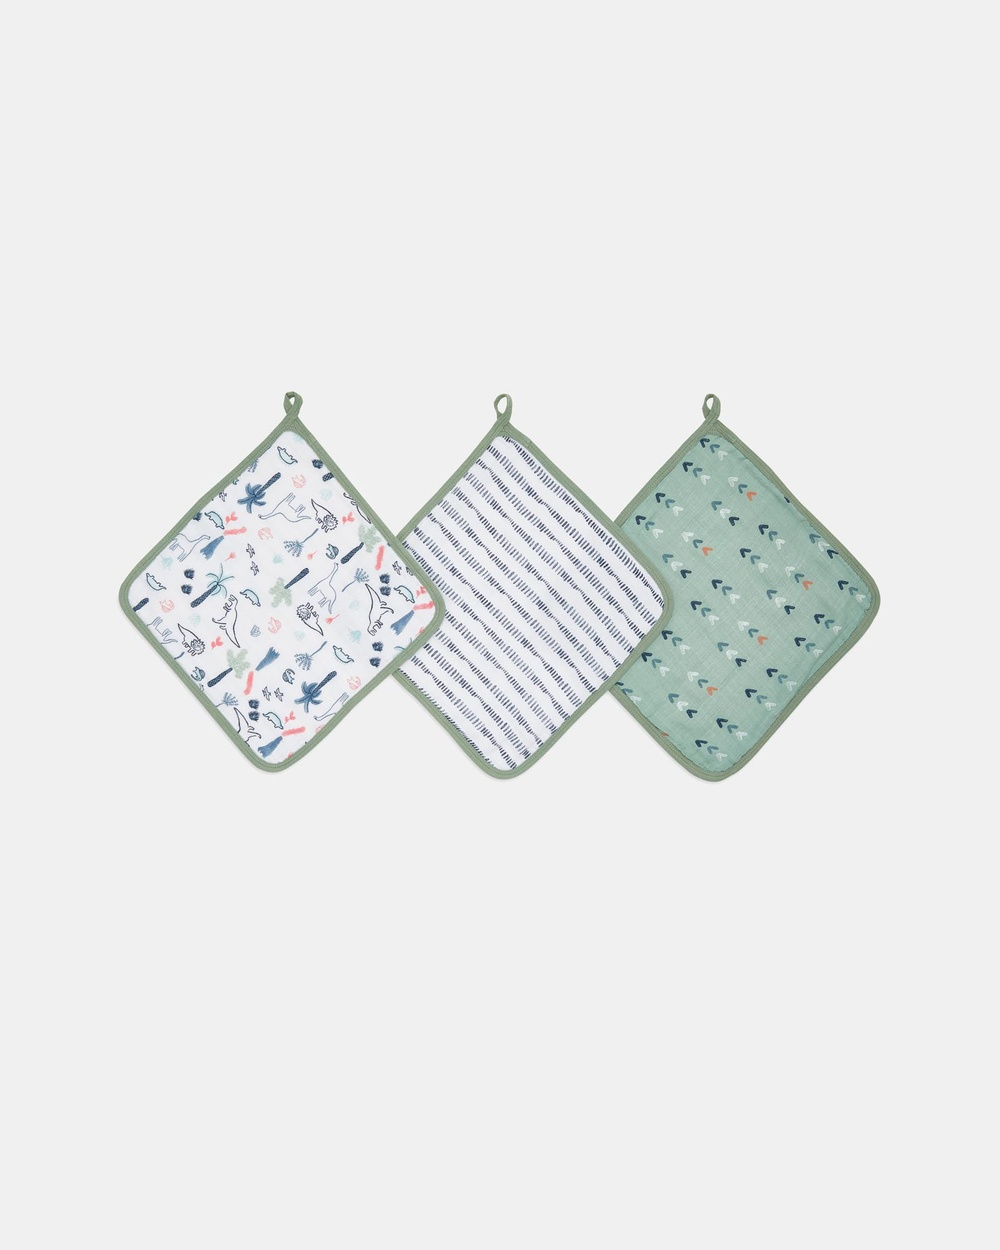 Aden & Anais 3 Pack Essentials Muslin Washcloths Towels Face Washers Dinotime 3-Pack